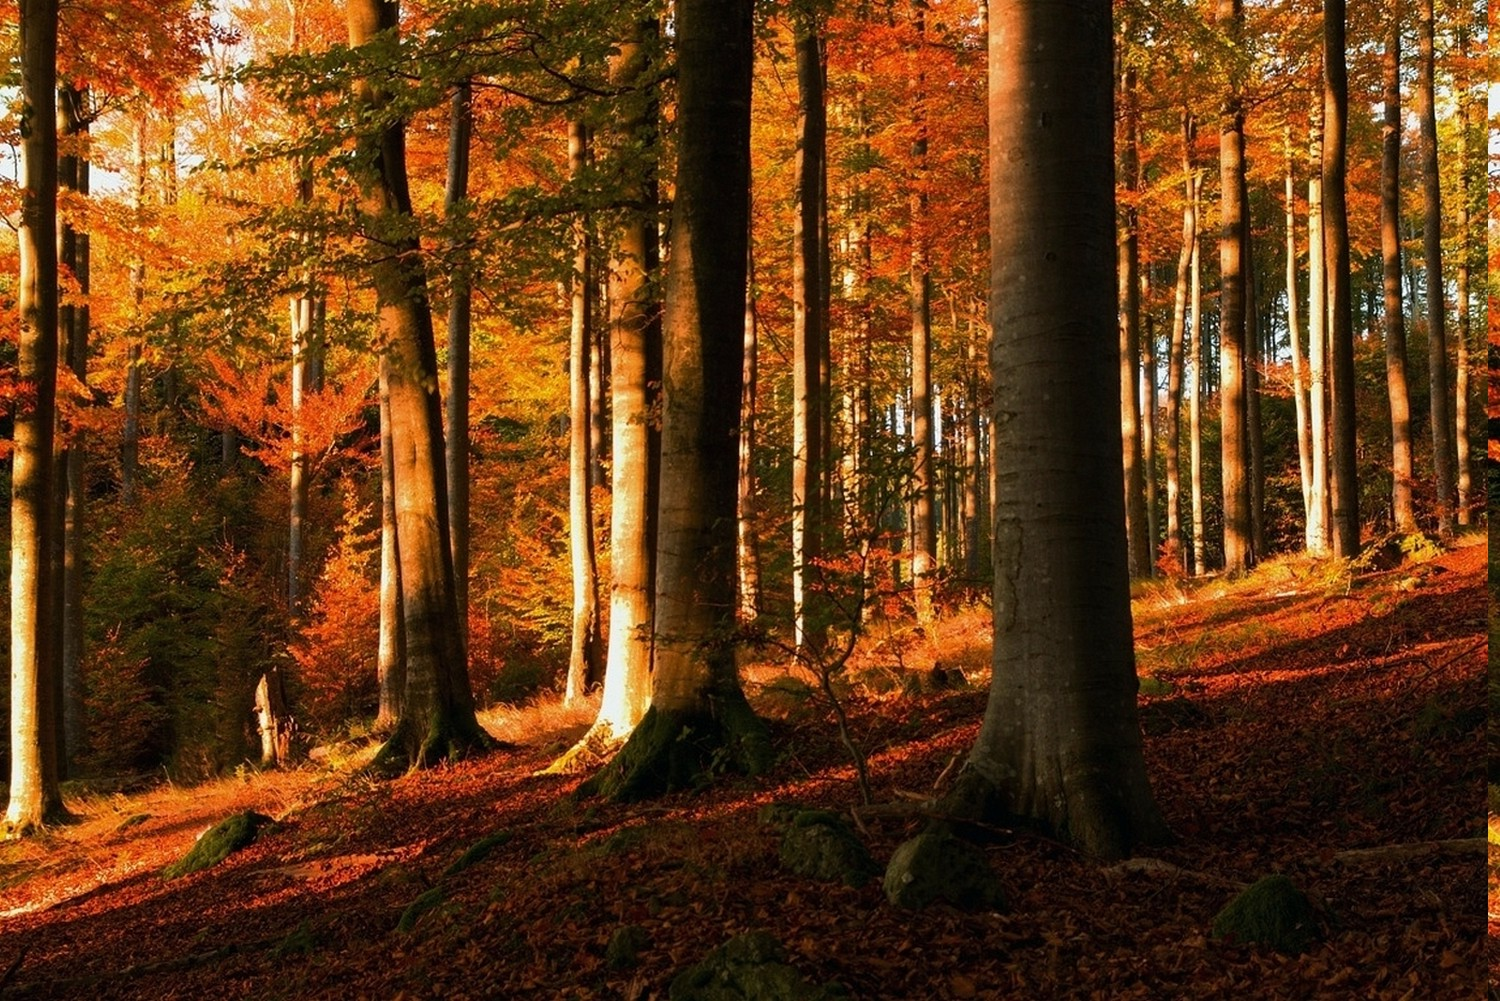 Fall Woodsy Pc Wallpaper Sunset Forest Fall Trees Leaves Hill Moss Shrubs